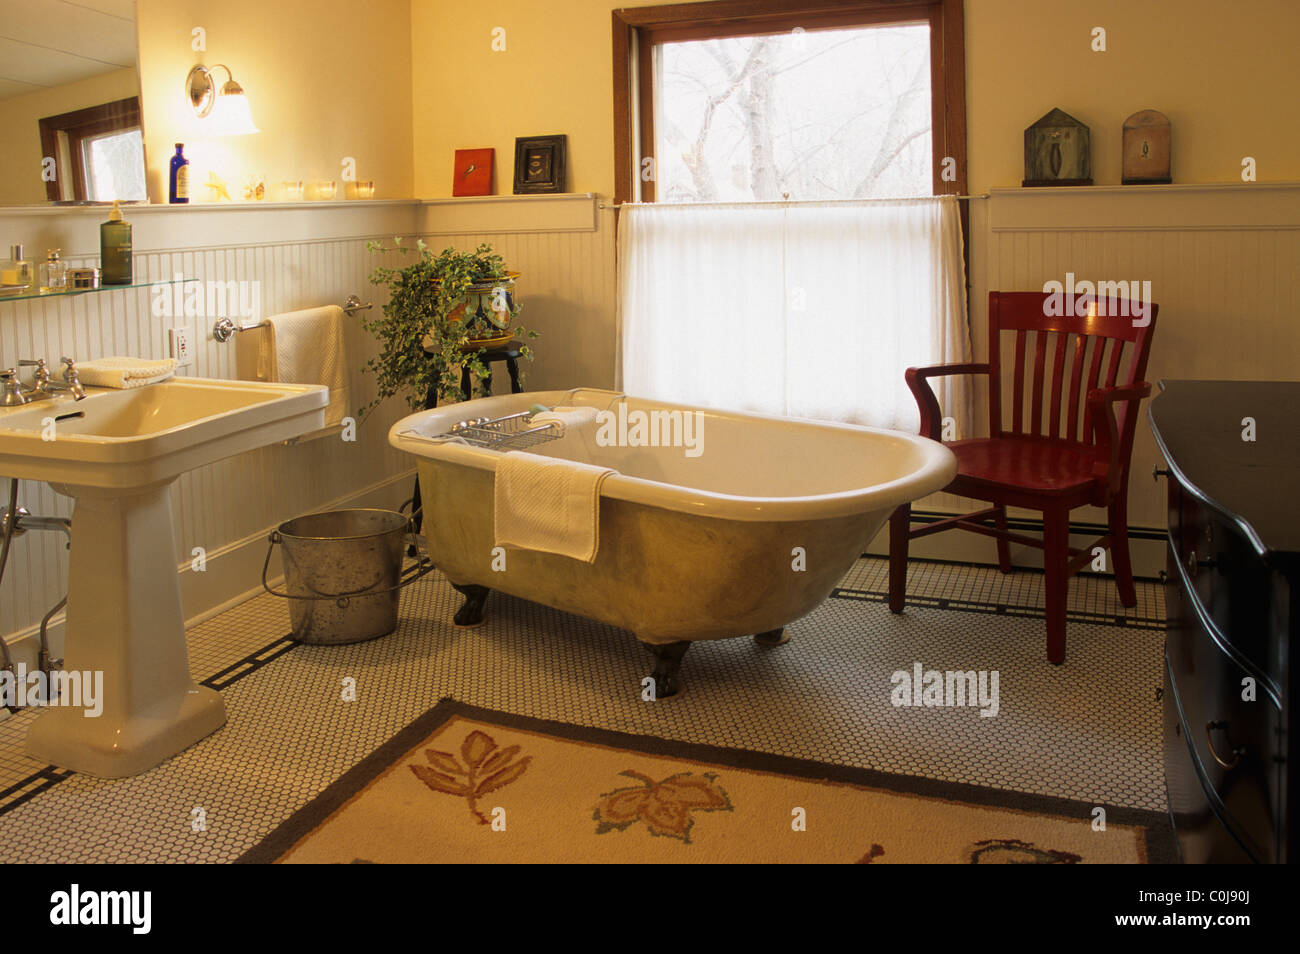 OLD-FASHIONED CAST-IRON CLAWFOOT BATHTUB AND PEDESTAL SINK IN Stock ...